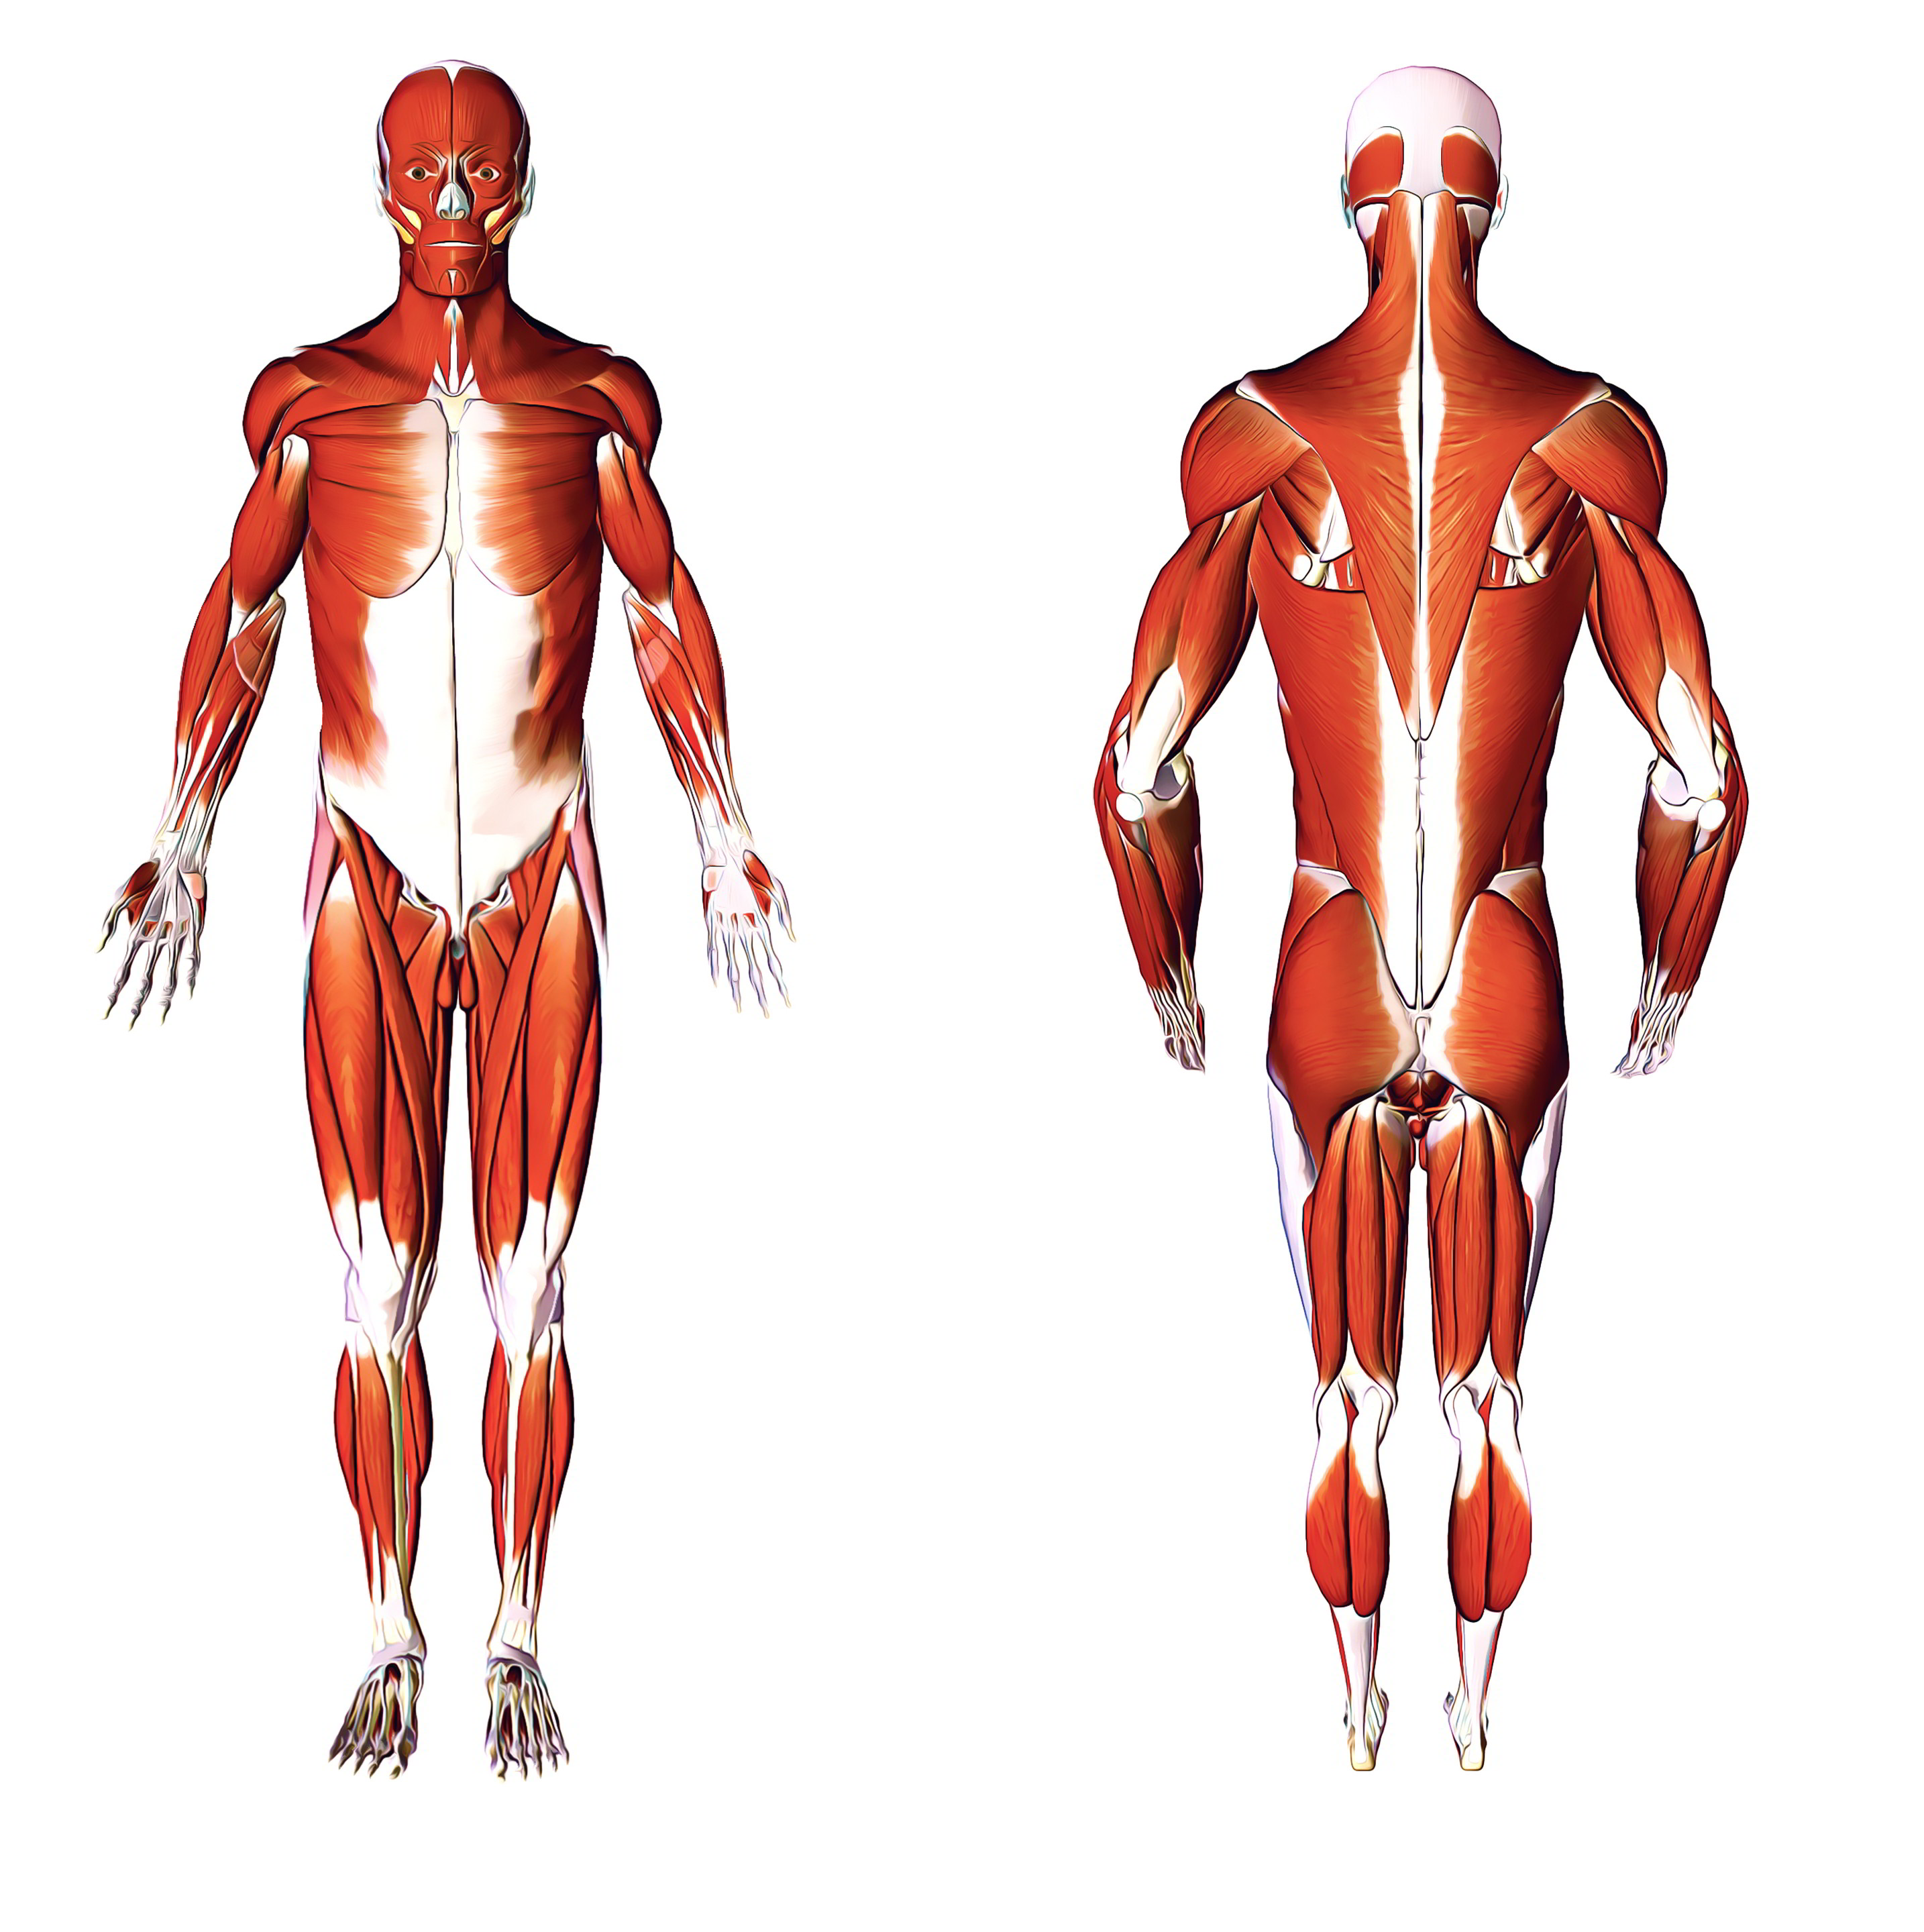 Human Anatomy – Learn Everything About the Human Body!